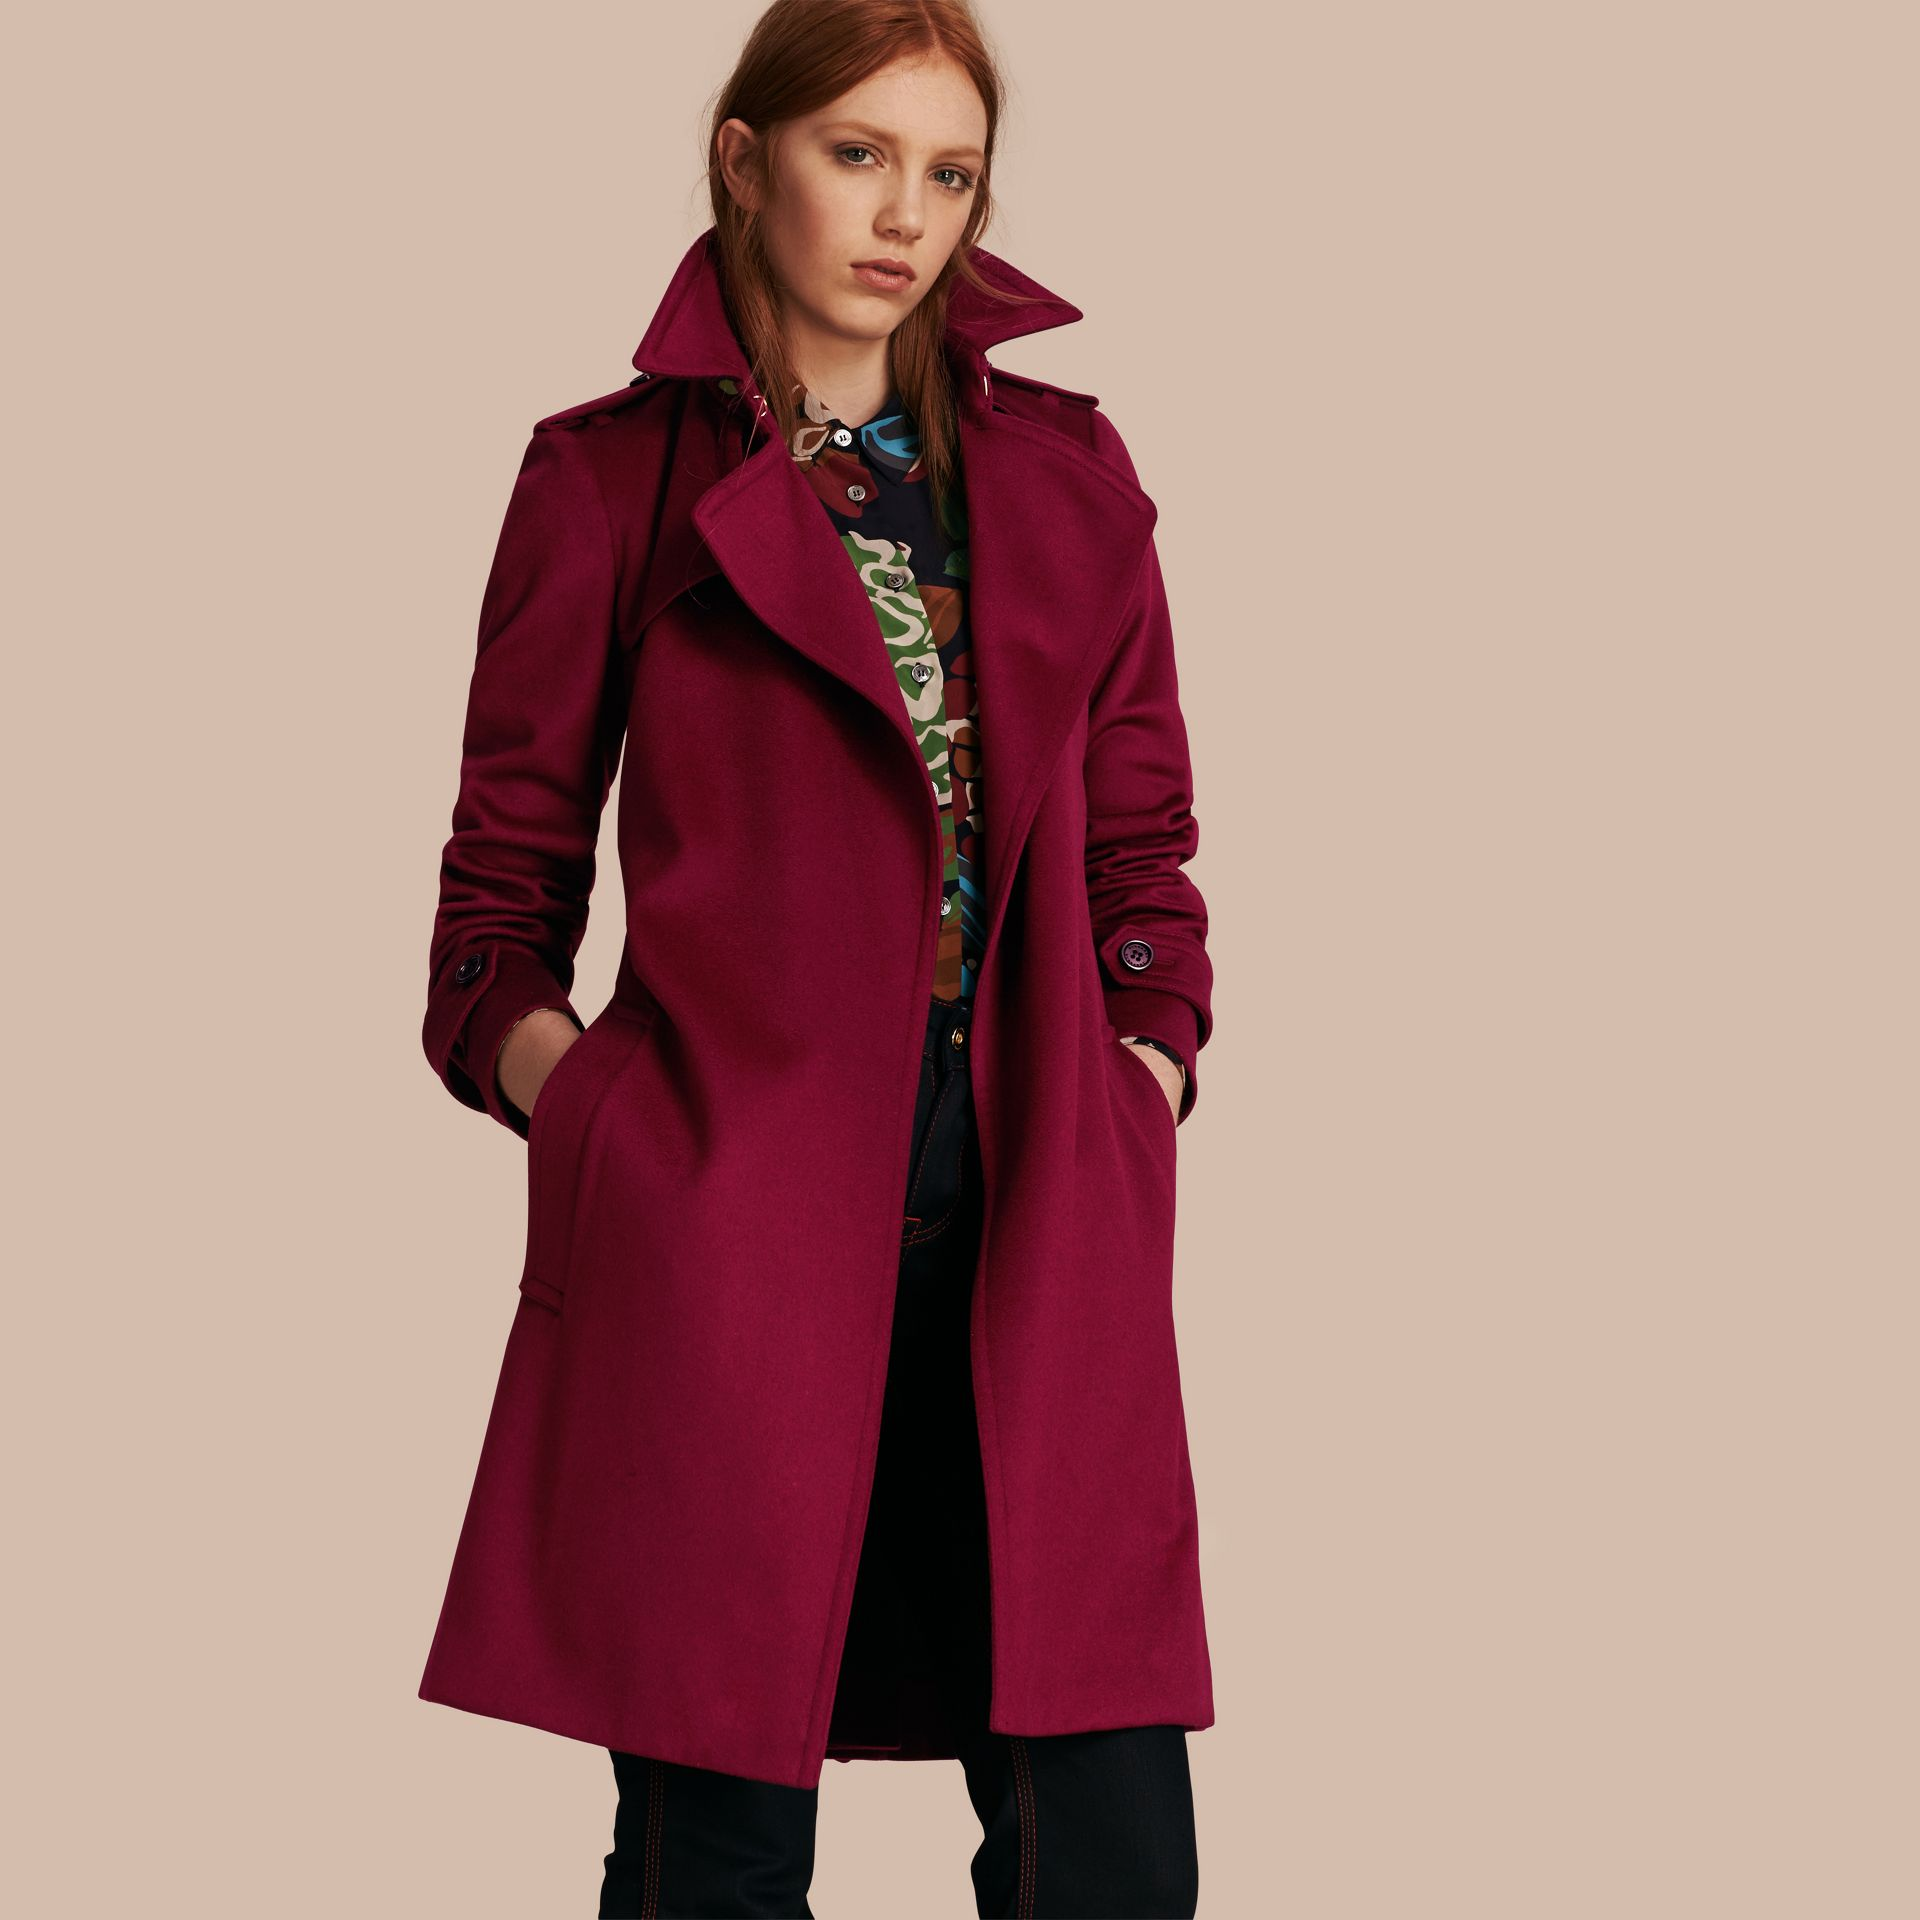 Cherry pink Cashmere Wrap Trench Coat Cherry Pink - gallery image 1